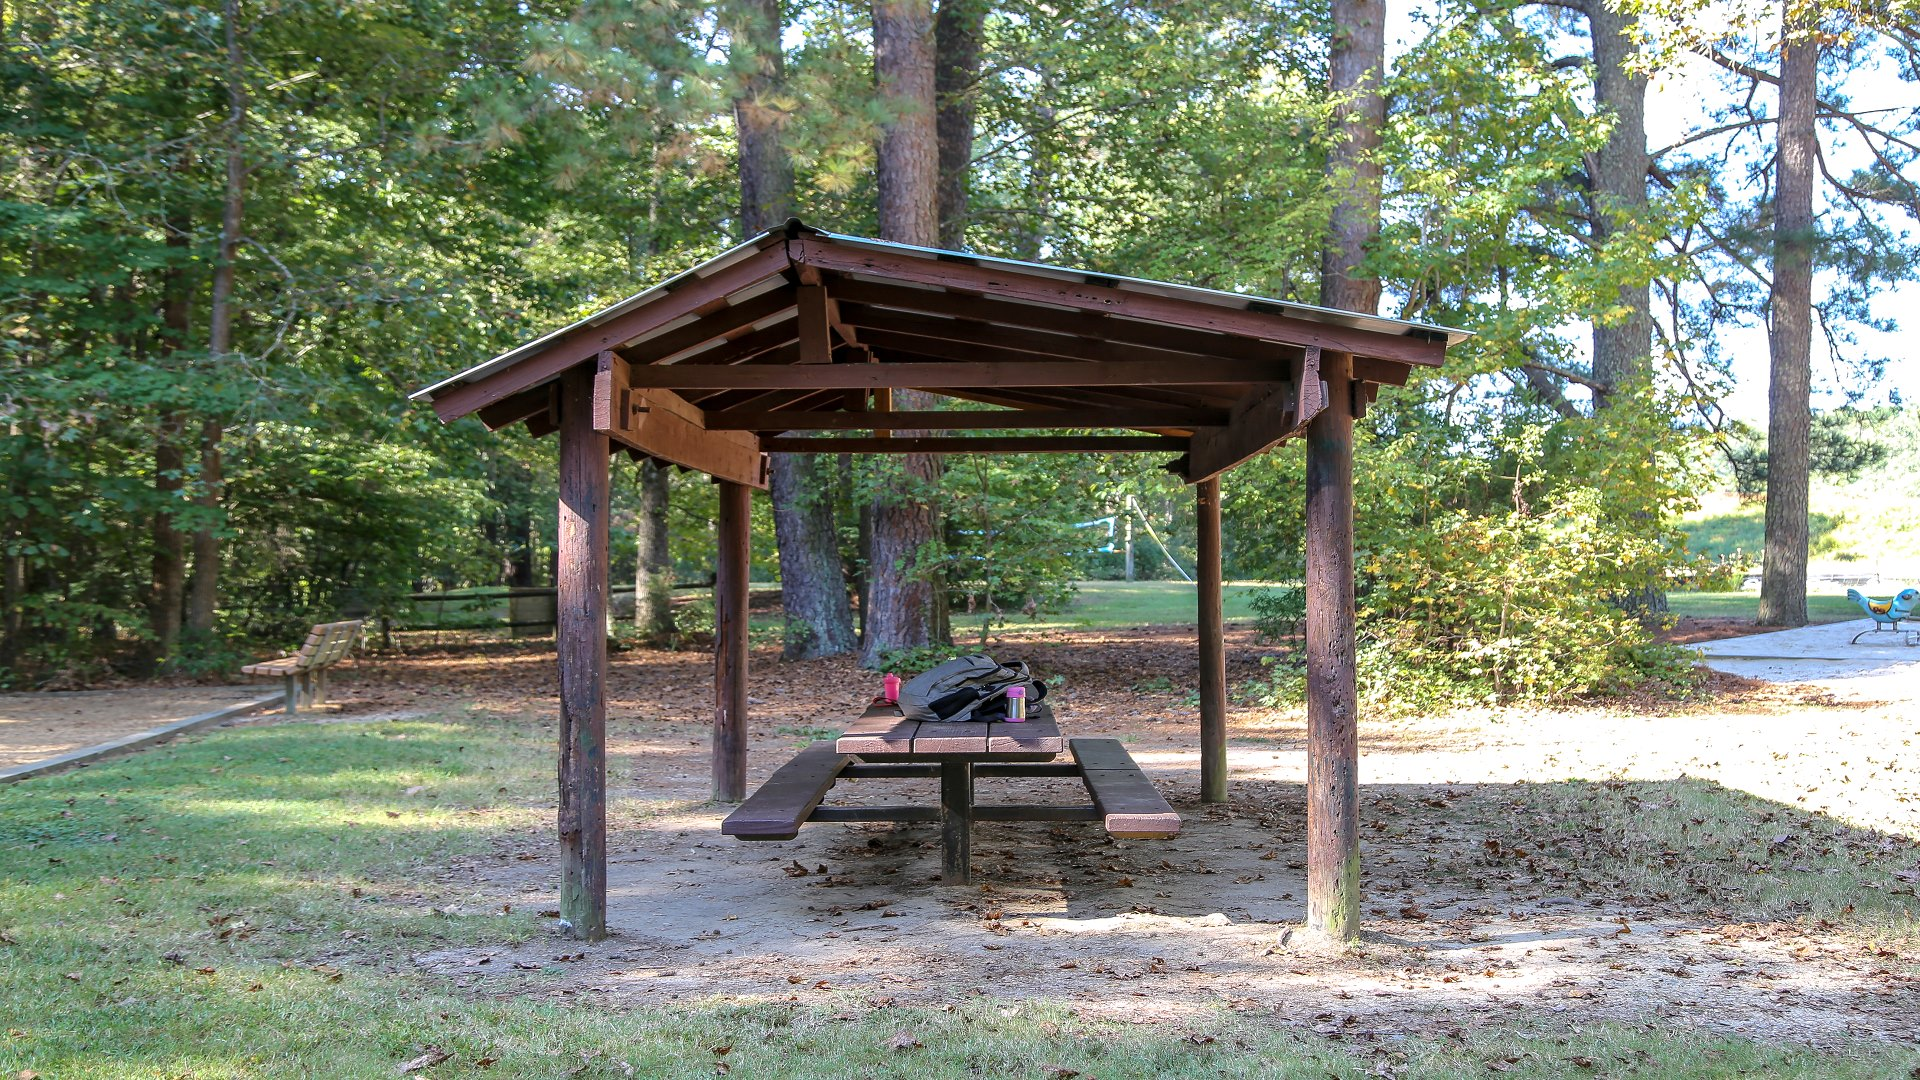 One of the individual picnic tables